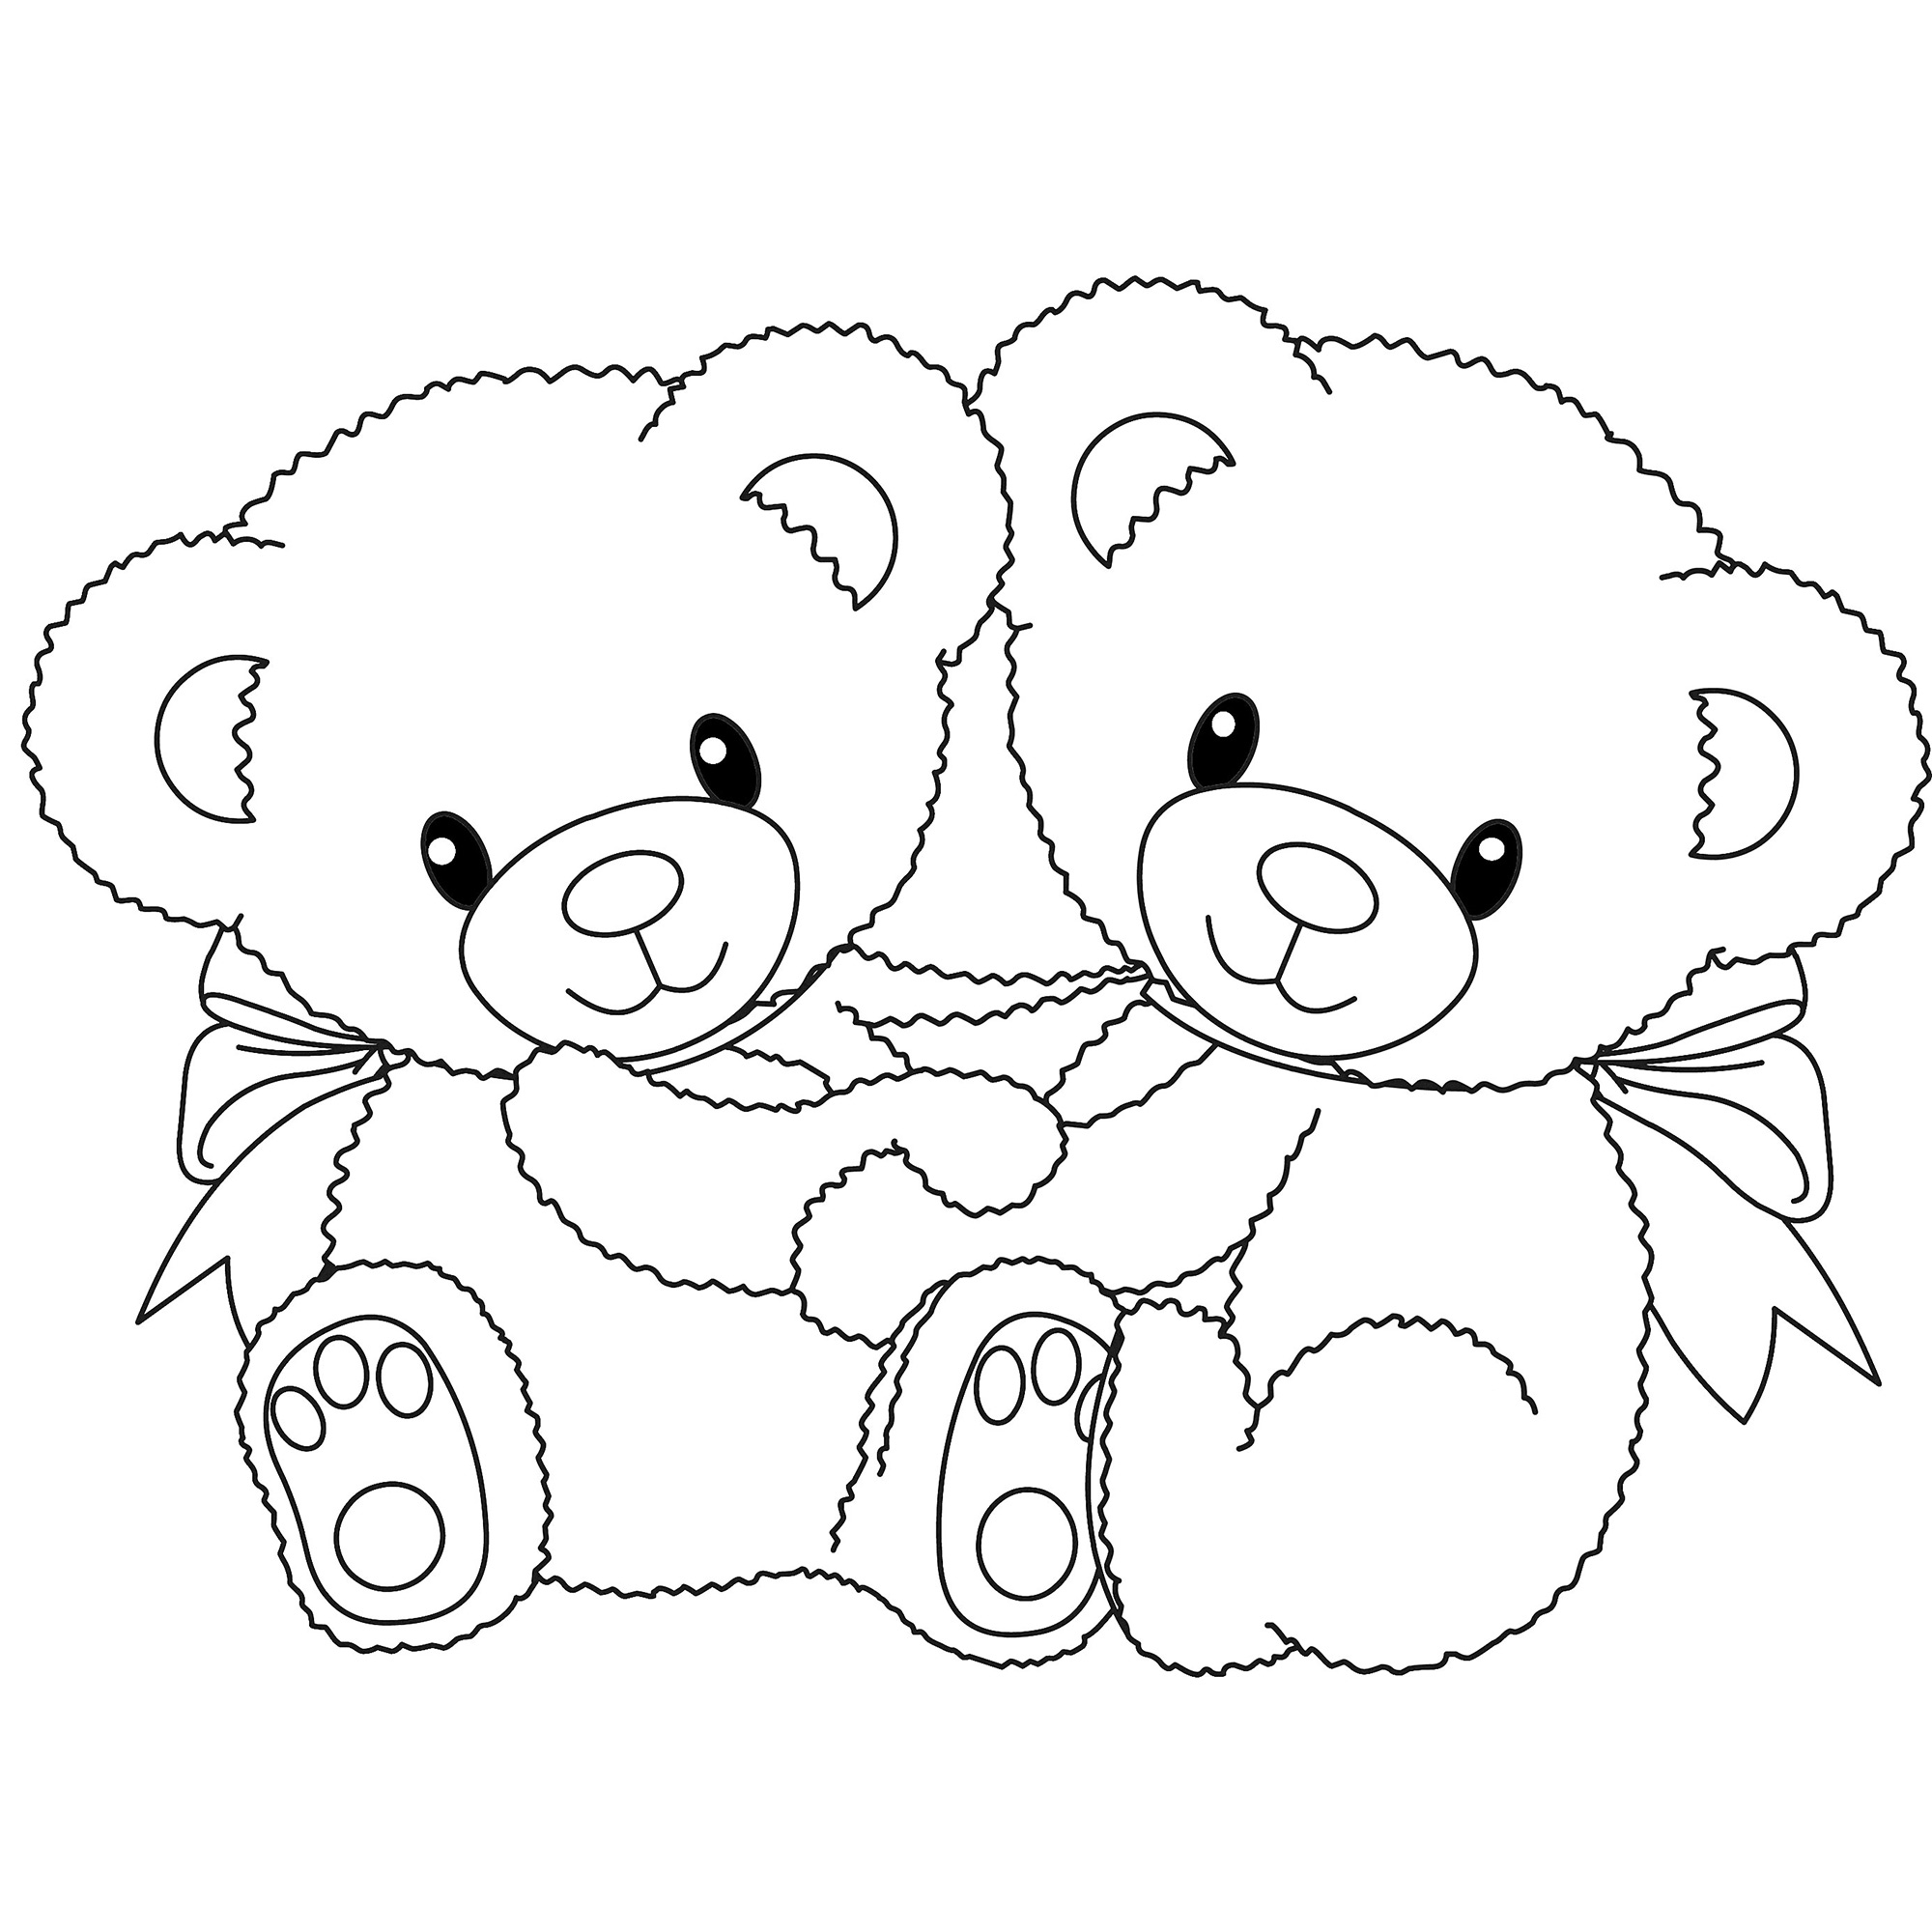 Teddy clipart coloring page #8